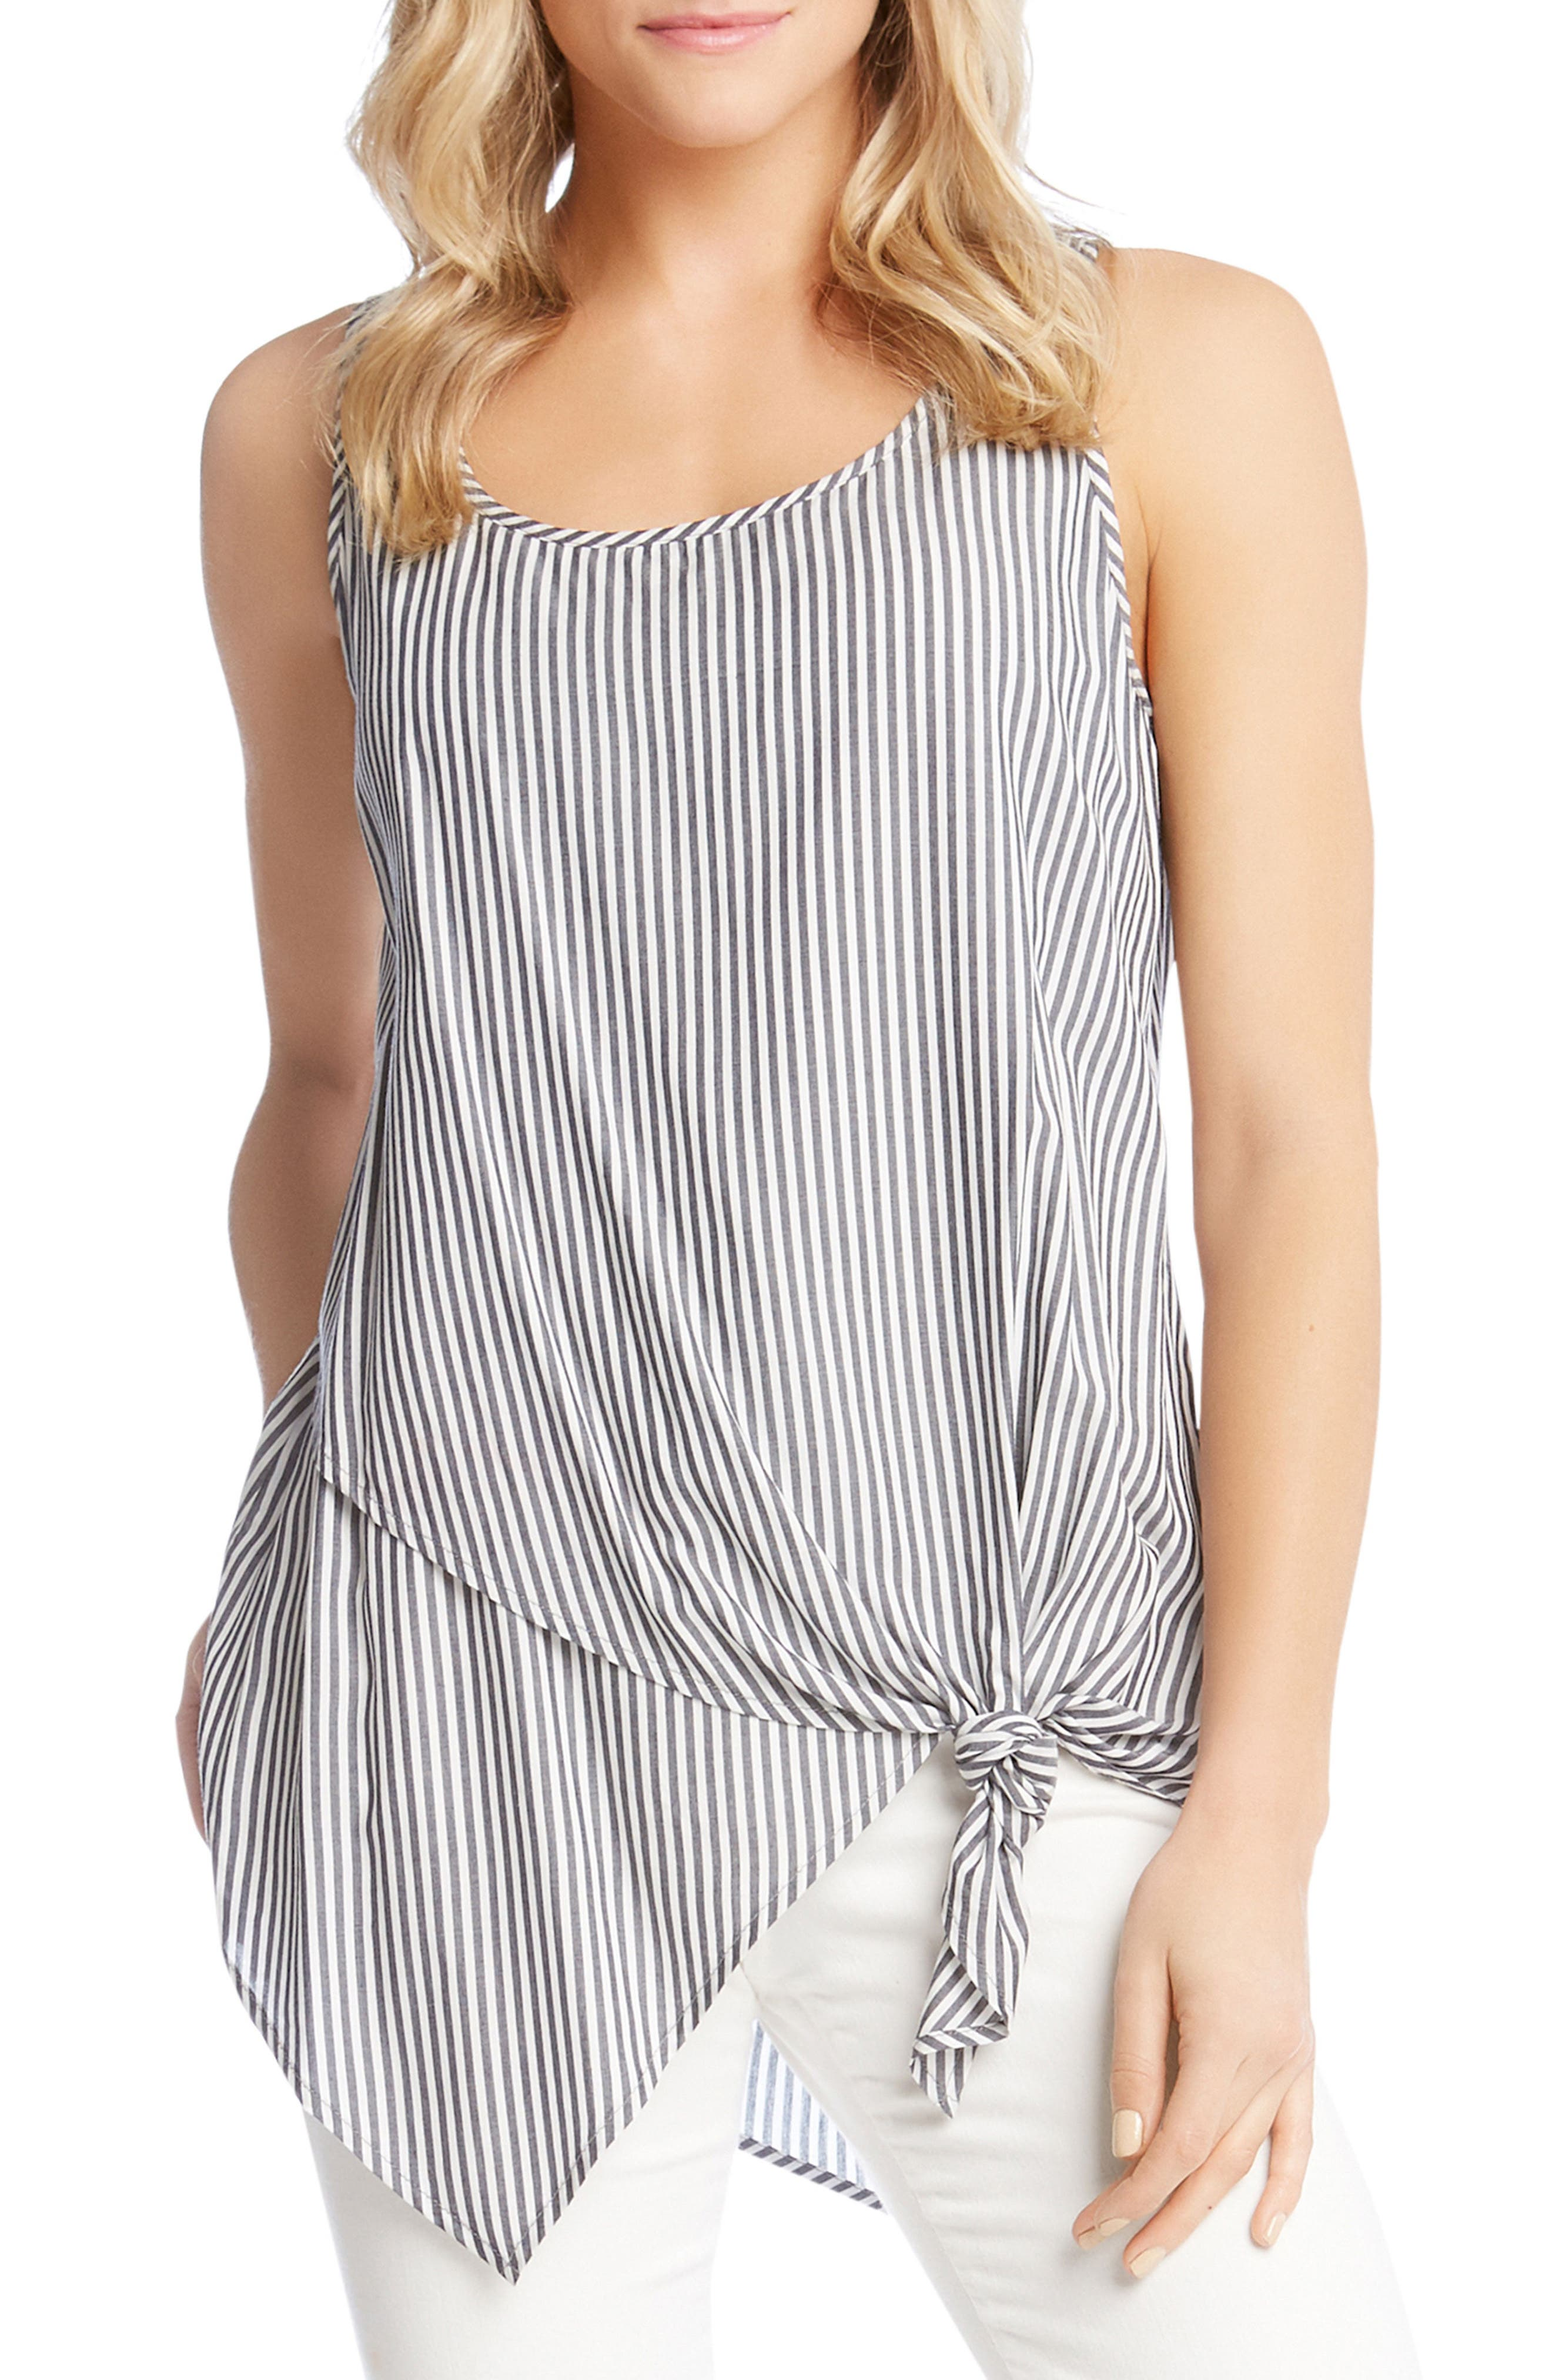 Kane Kane Asymmetrical Knotted Top,                         Main,                         color, 489